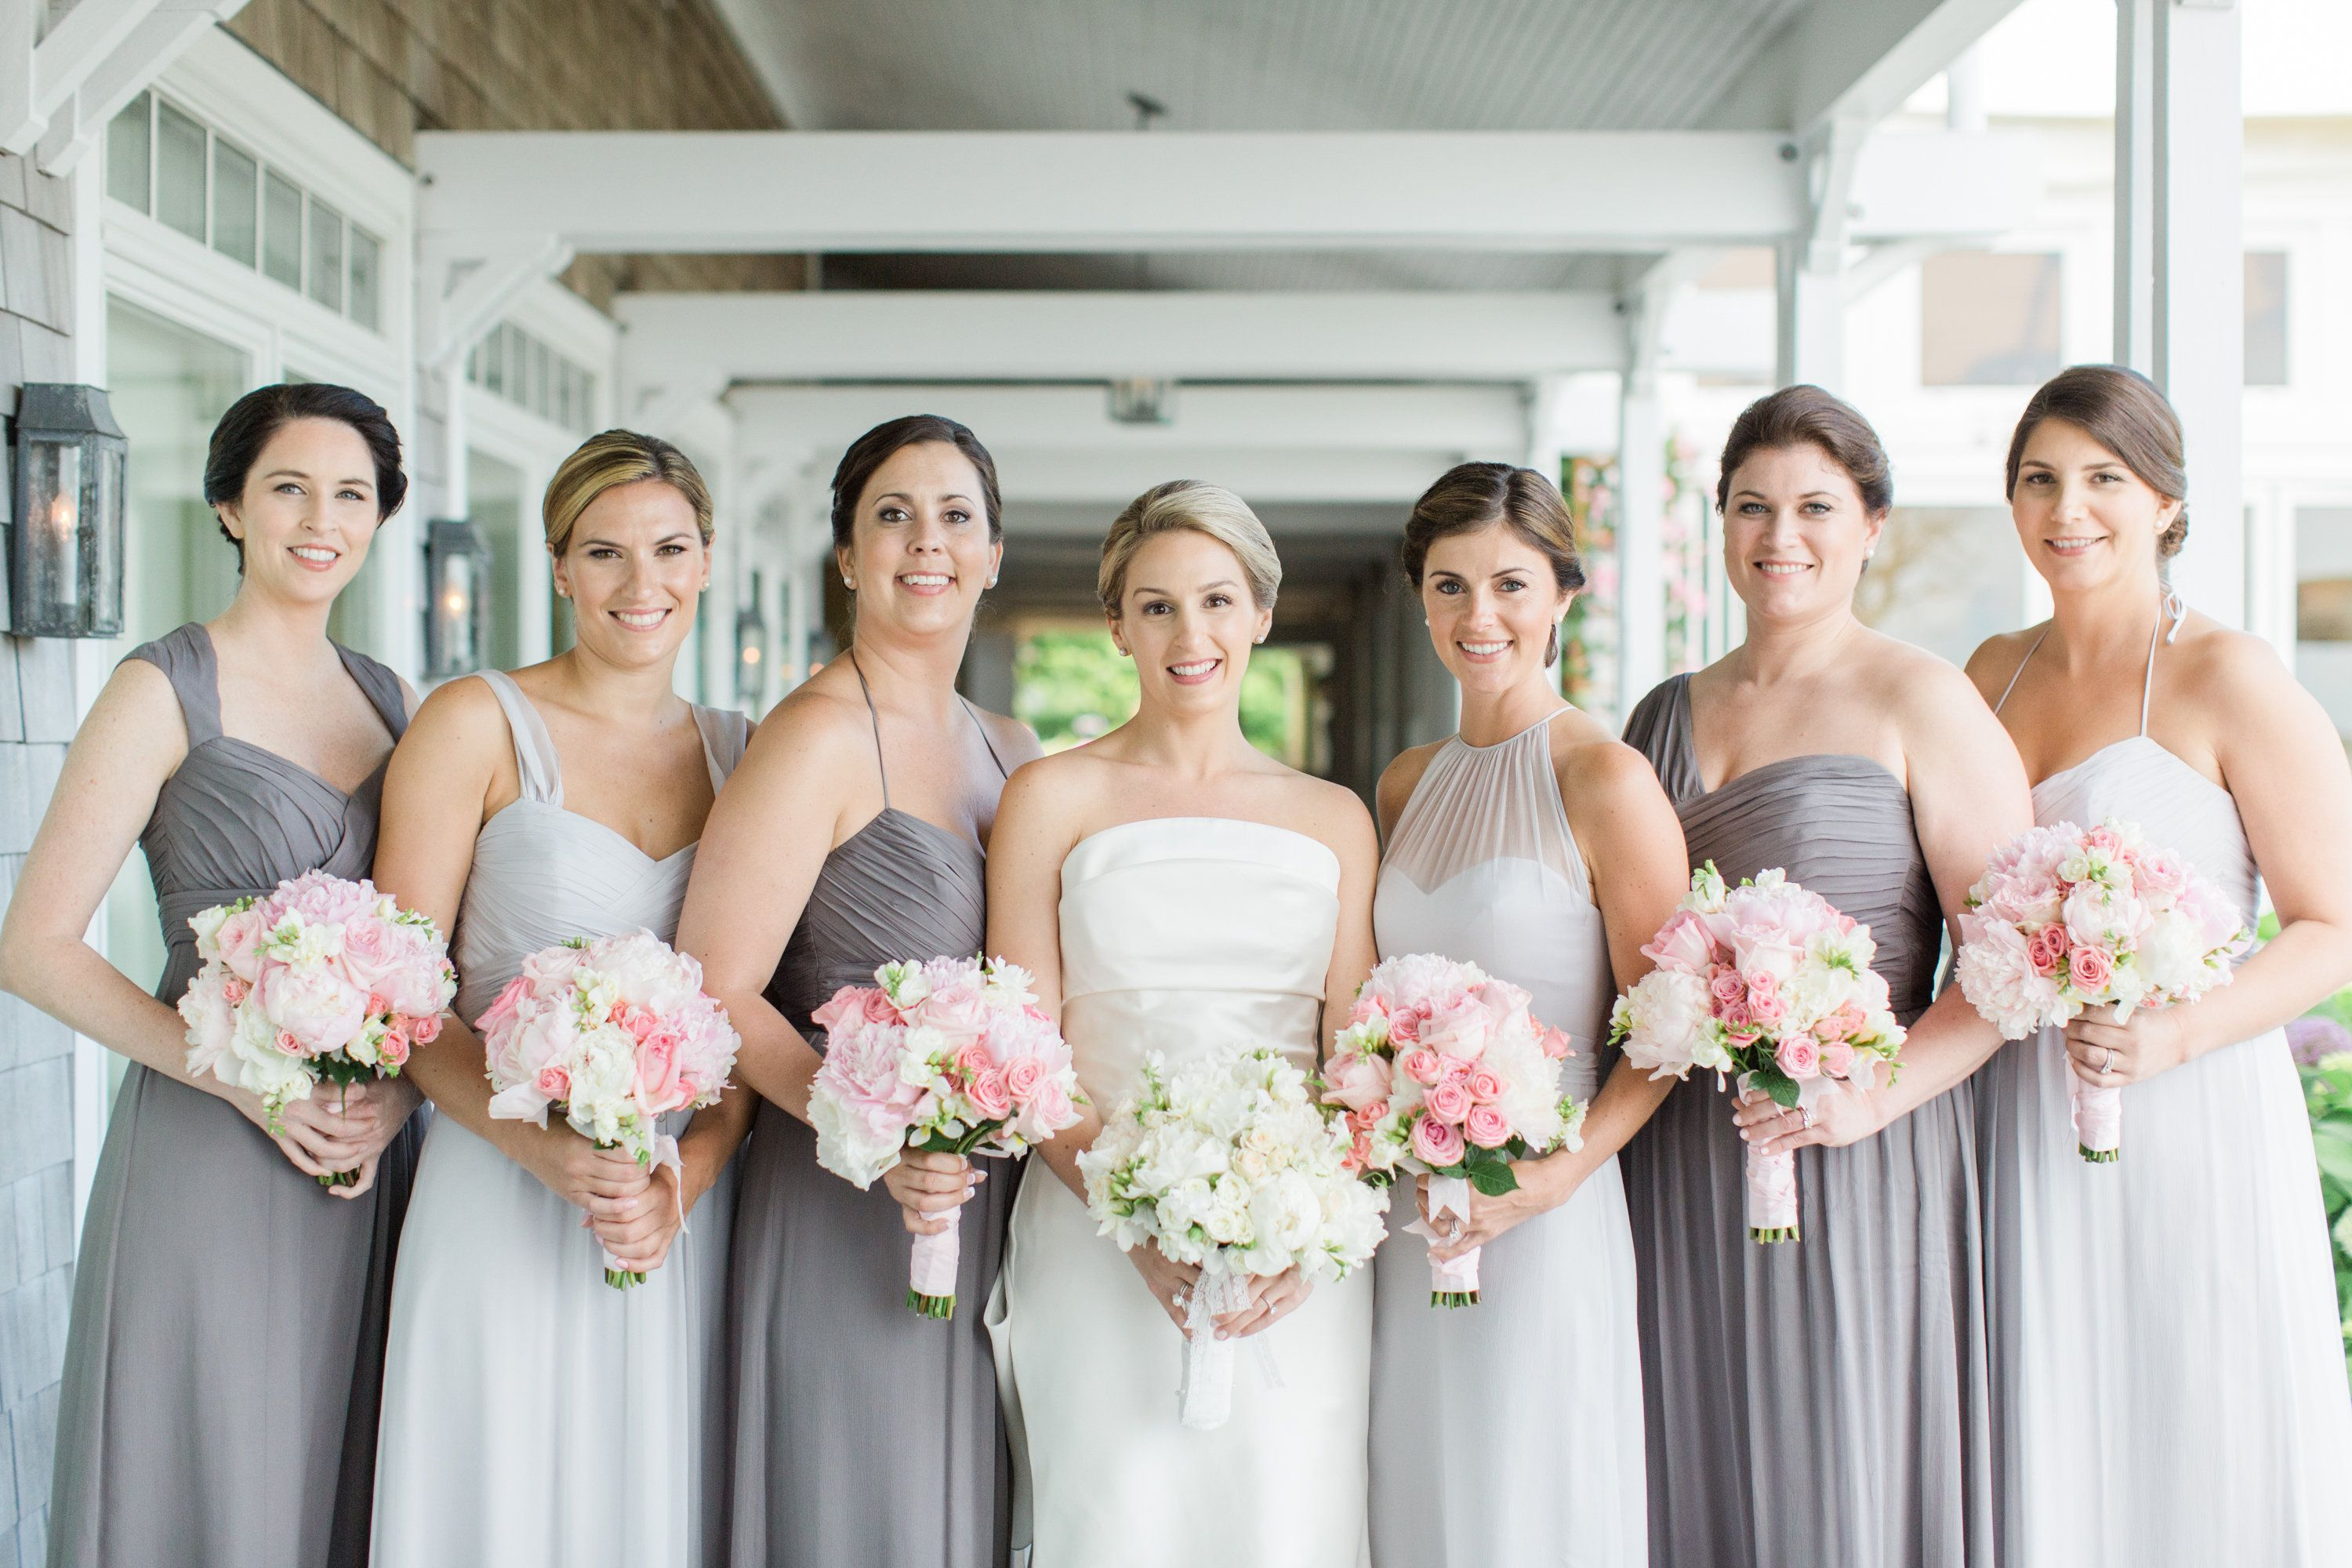 ac96d4e962 amsale dove grey bridesmaids and pink bouquets  amsale  dovegrey  graphite   bridesmaids